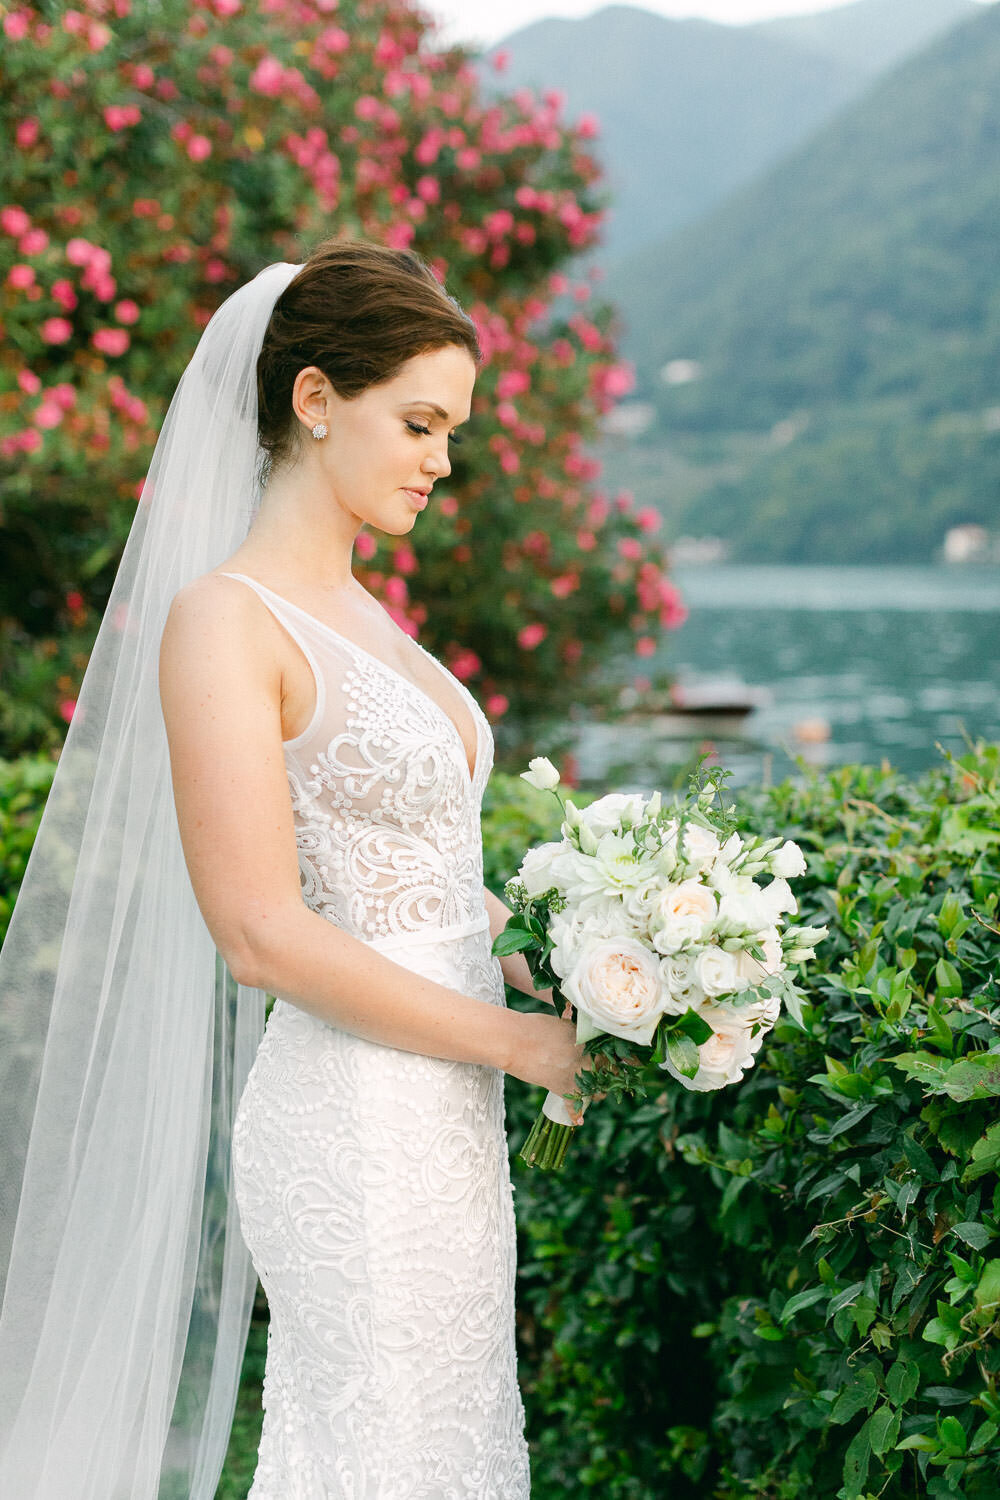 Bride in white lace bridal dress and veil holding white floral bouquet by Lake Como Wedding Italy